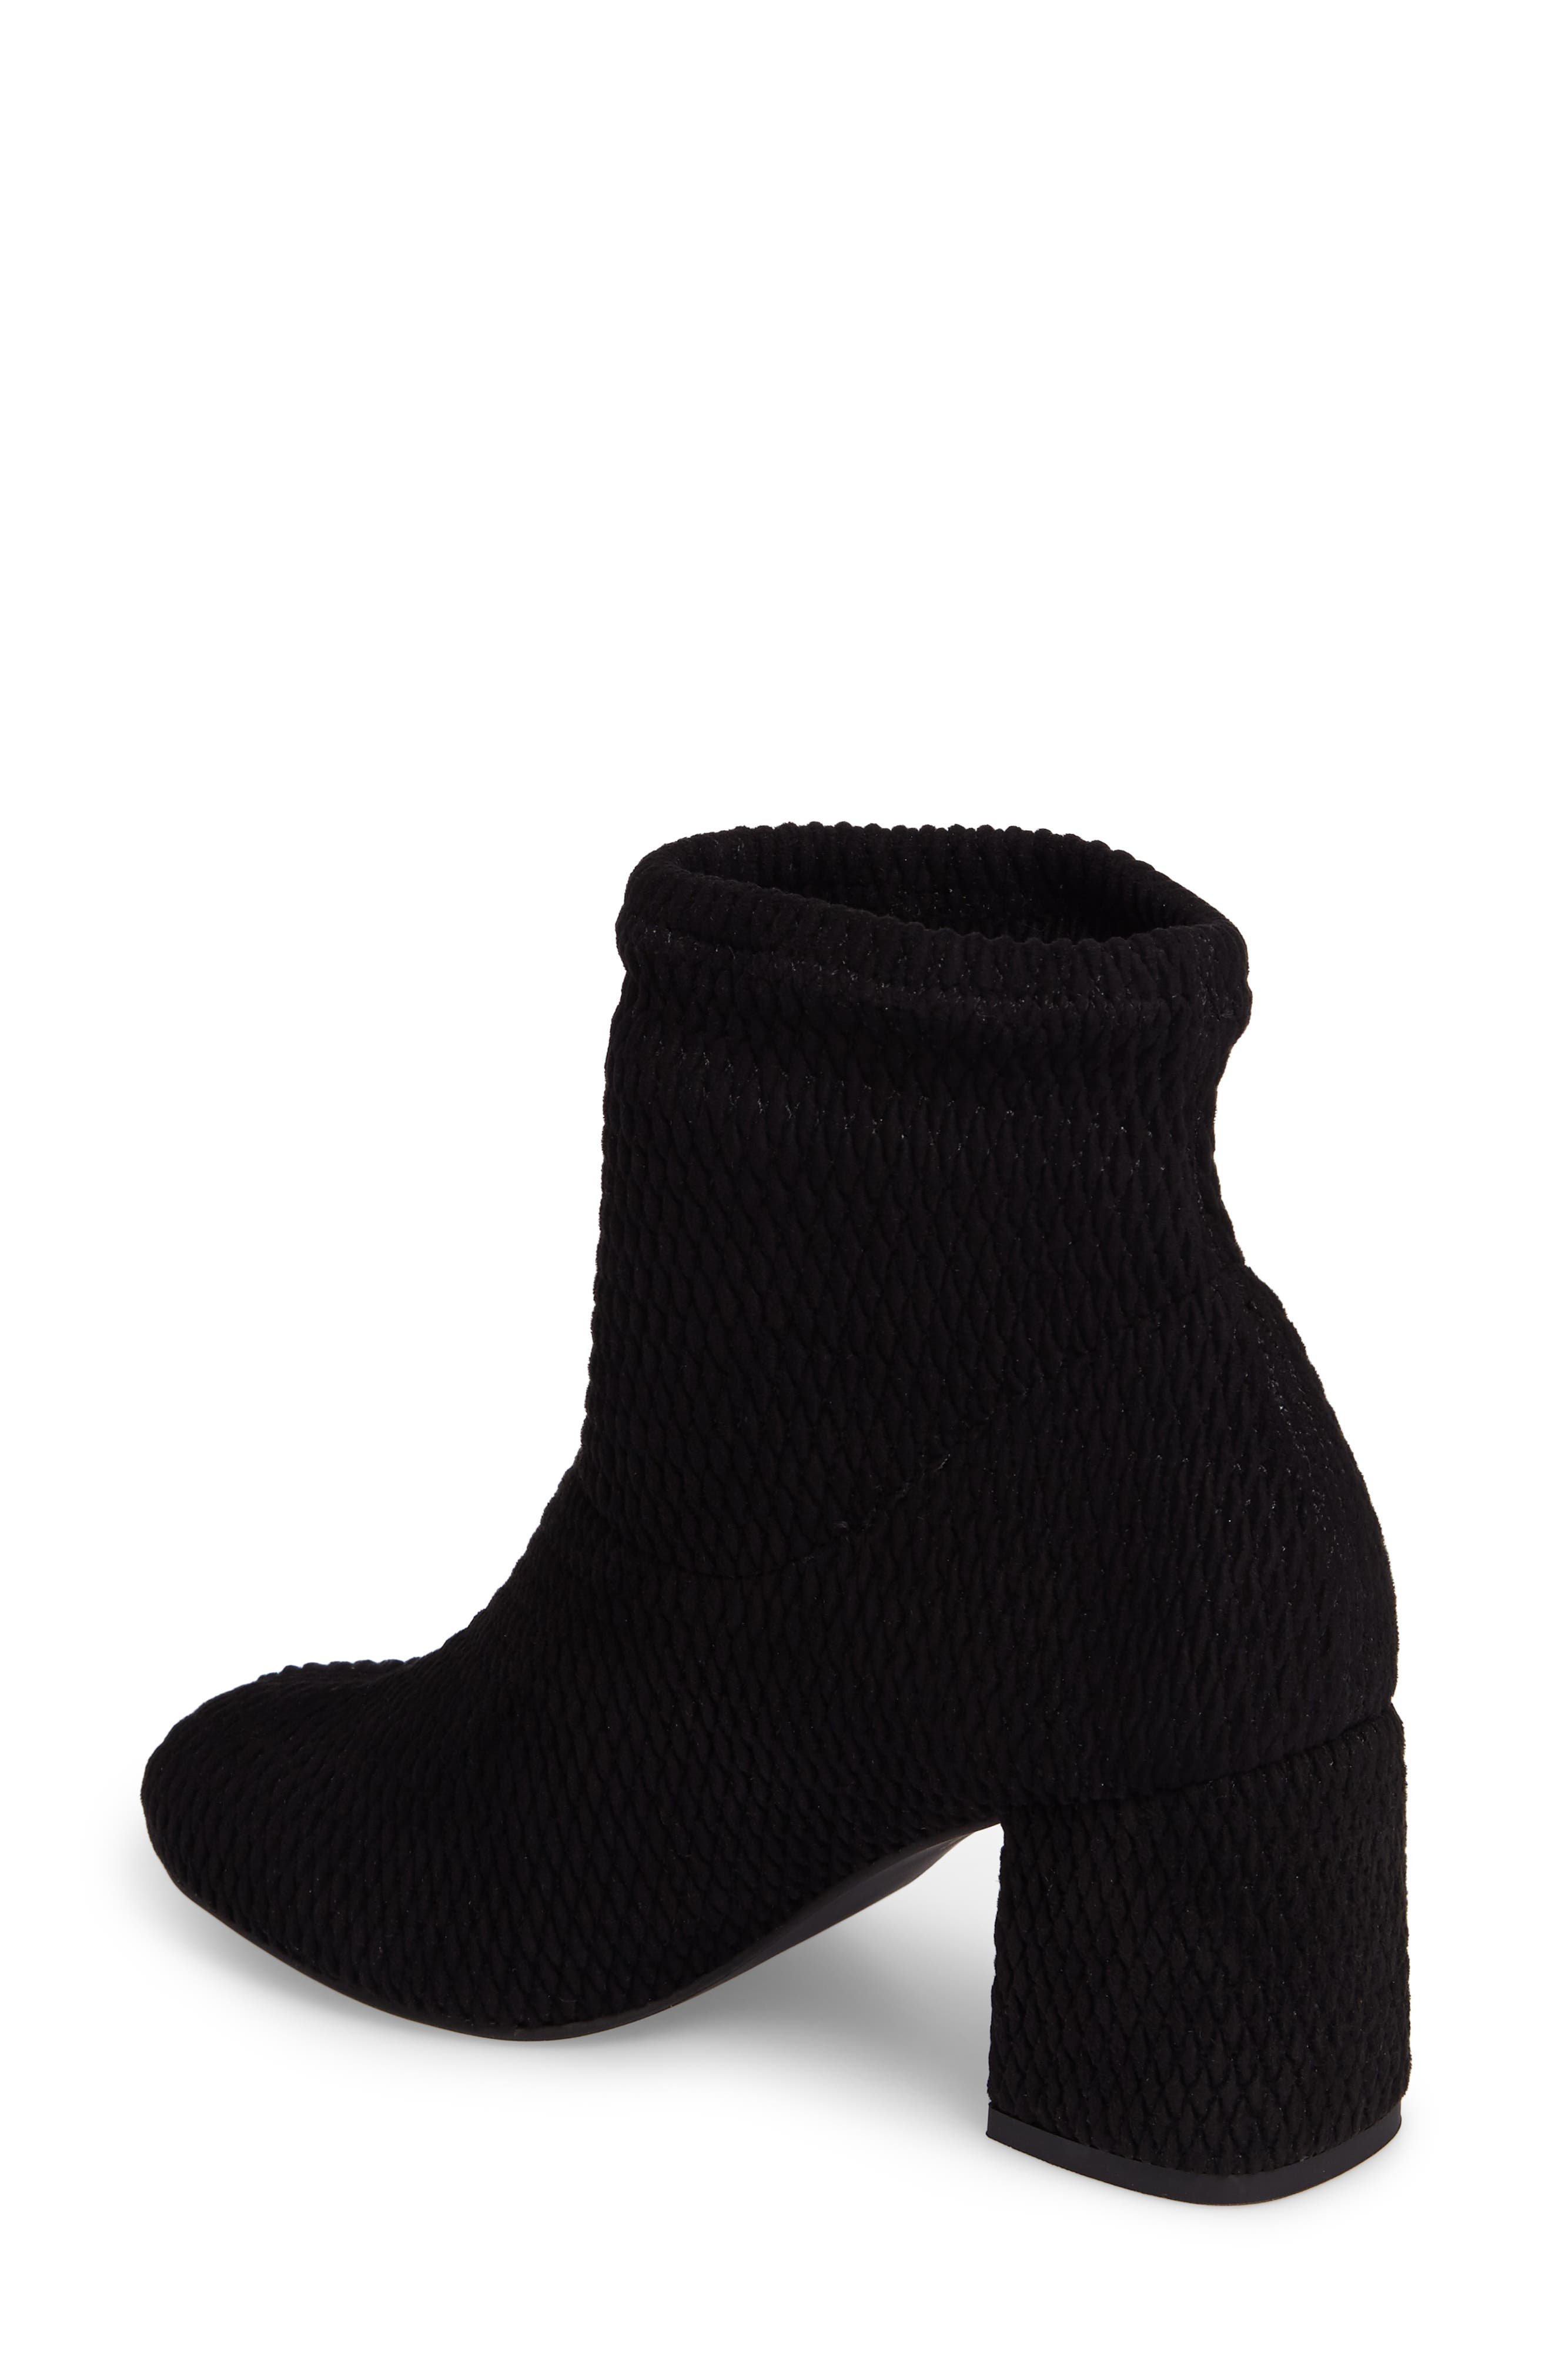 Ad Lib Sock Bootie,                             Alternate thumbnail 2, color,                             Black Fabric